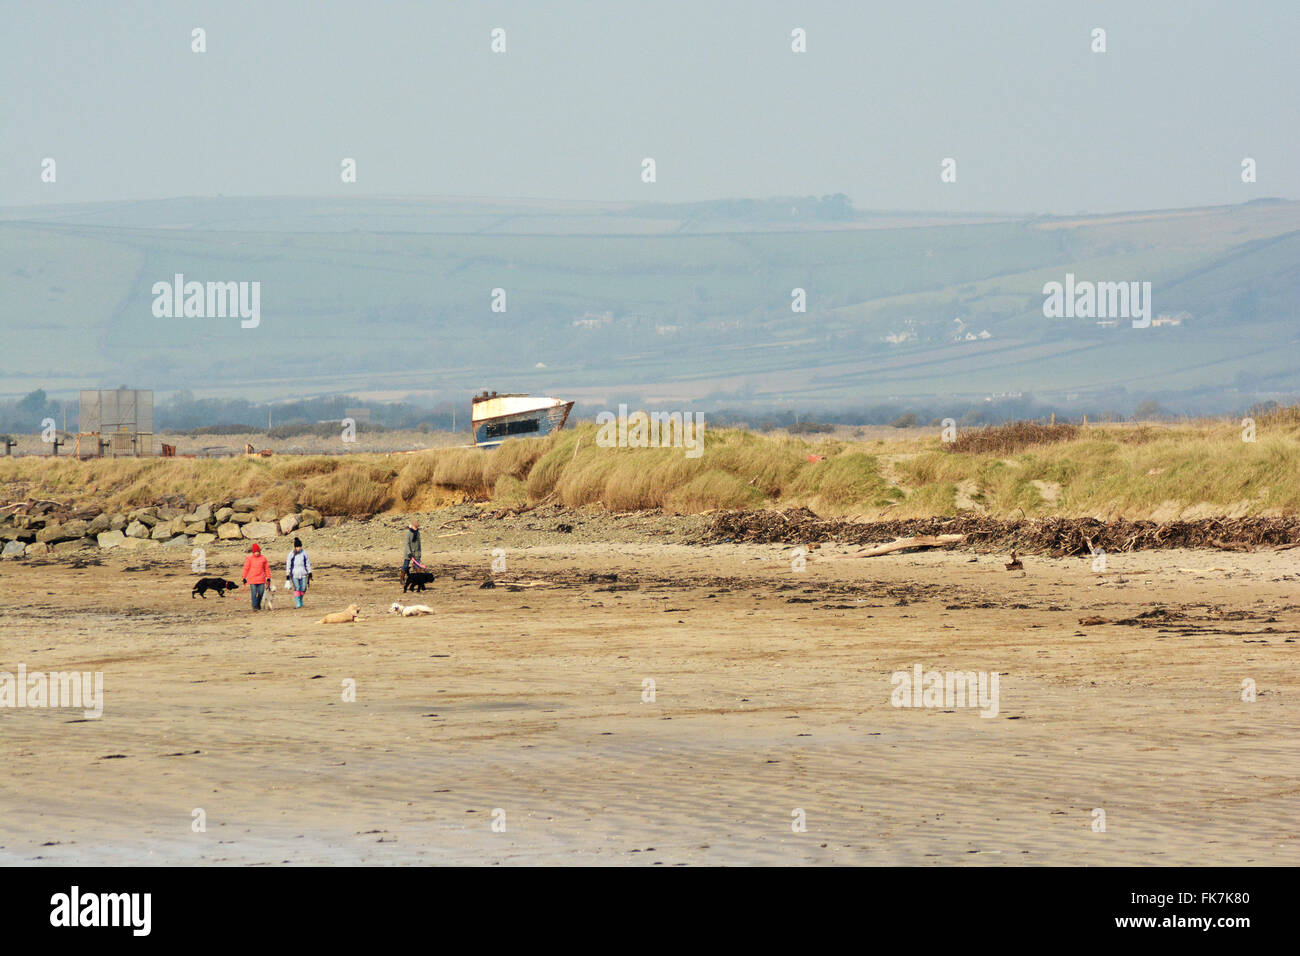 Winter Brisk Beach Walk Dogs Bristol Channel South West Coast Path Sands Tidal Walking Sand Dunes - Stock Image